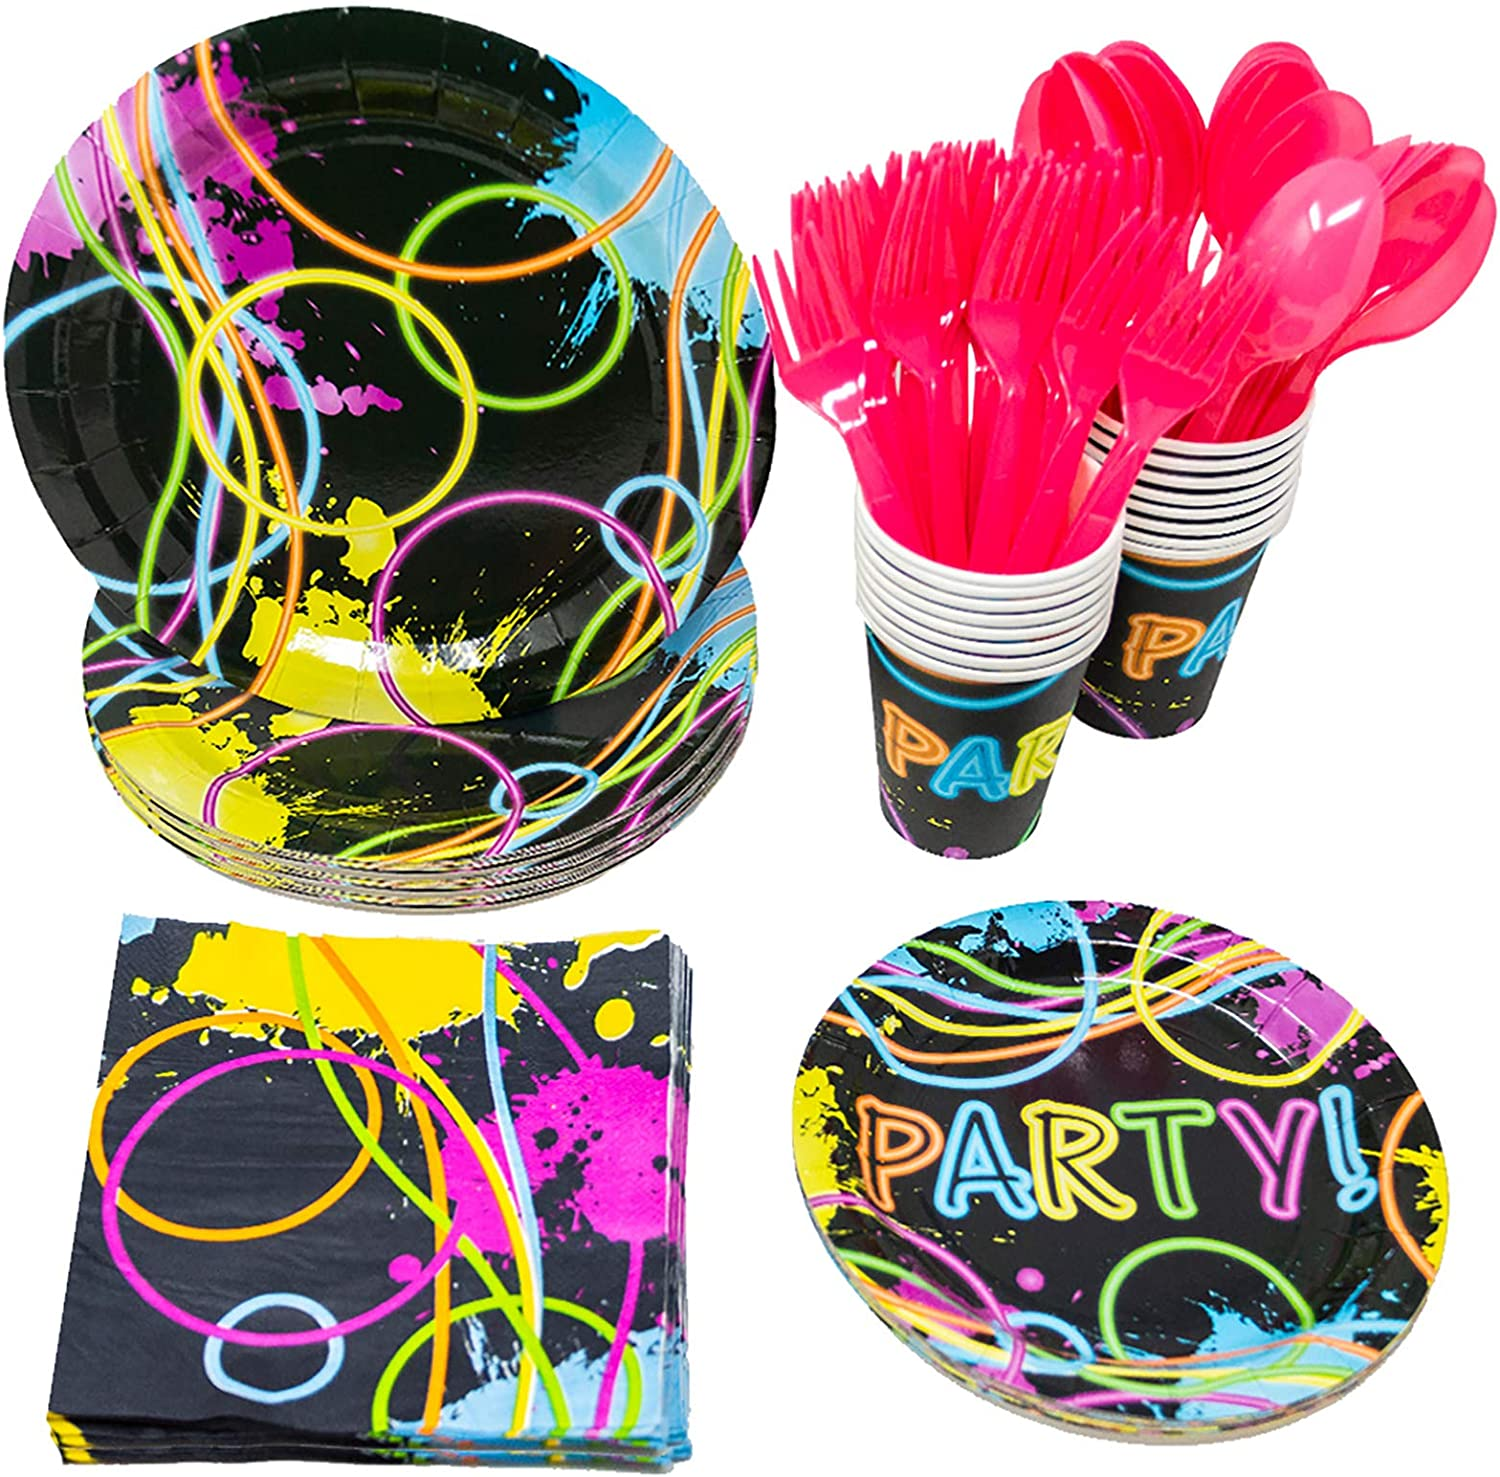 Blue Orchards Glow Party Party Supplies Packs (113+ Pieces for 16 Guests!), Glow Party Supplies, Tableware